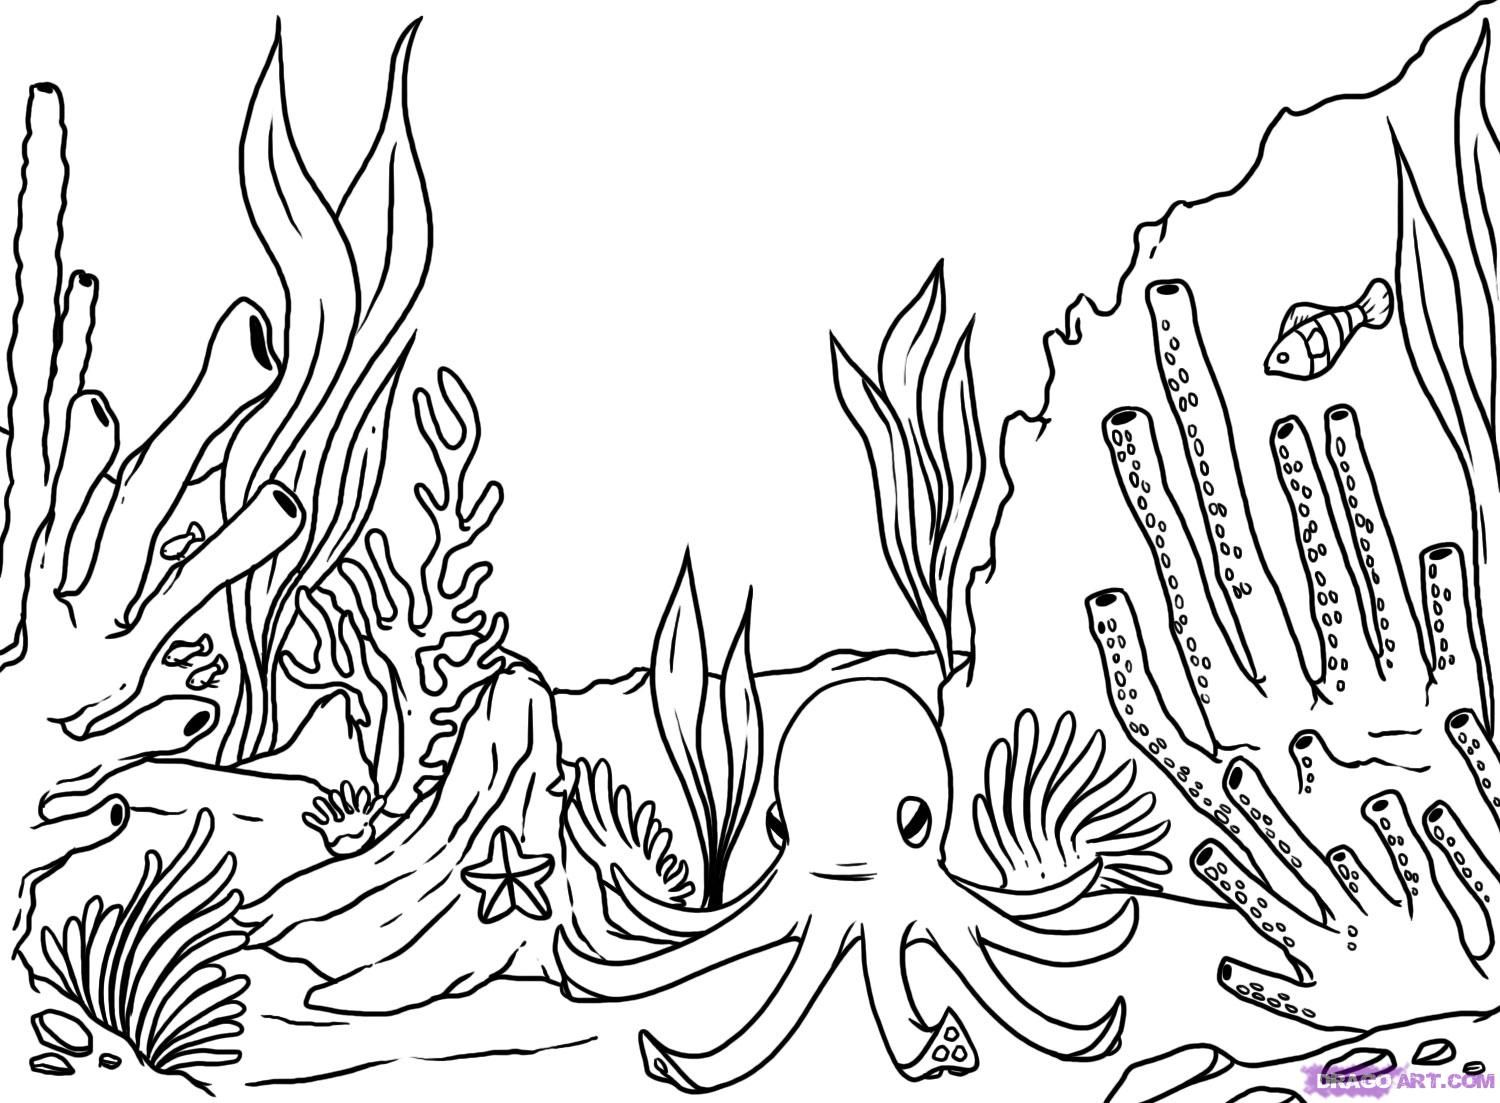 Coral Reef Fishes | Free Printable Templates & Coloring ...